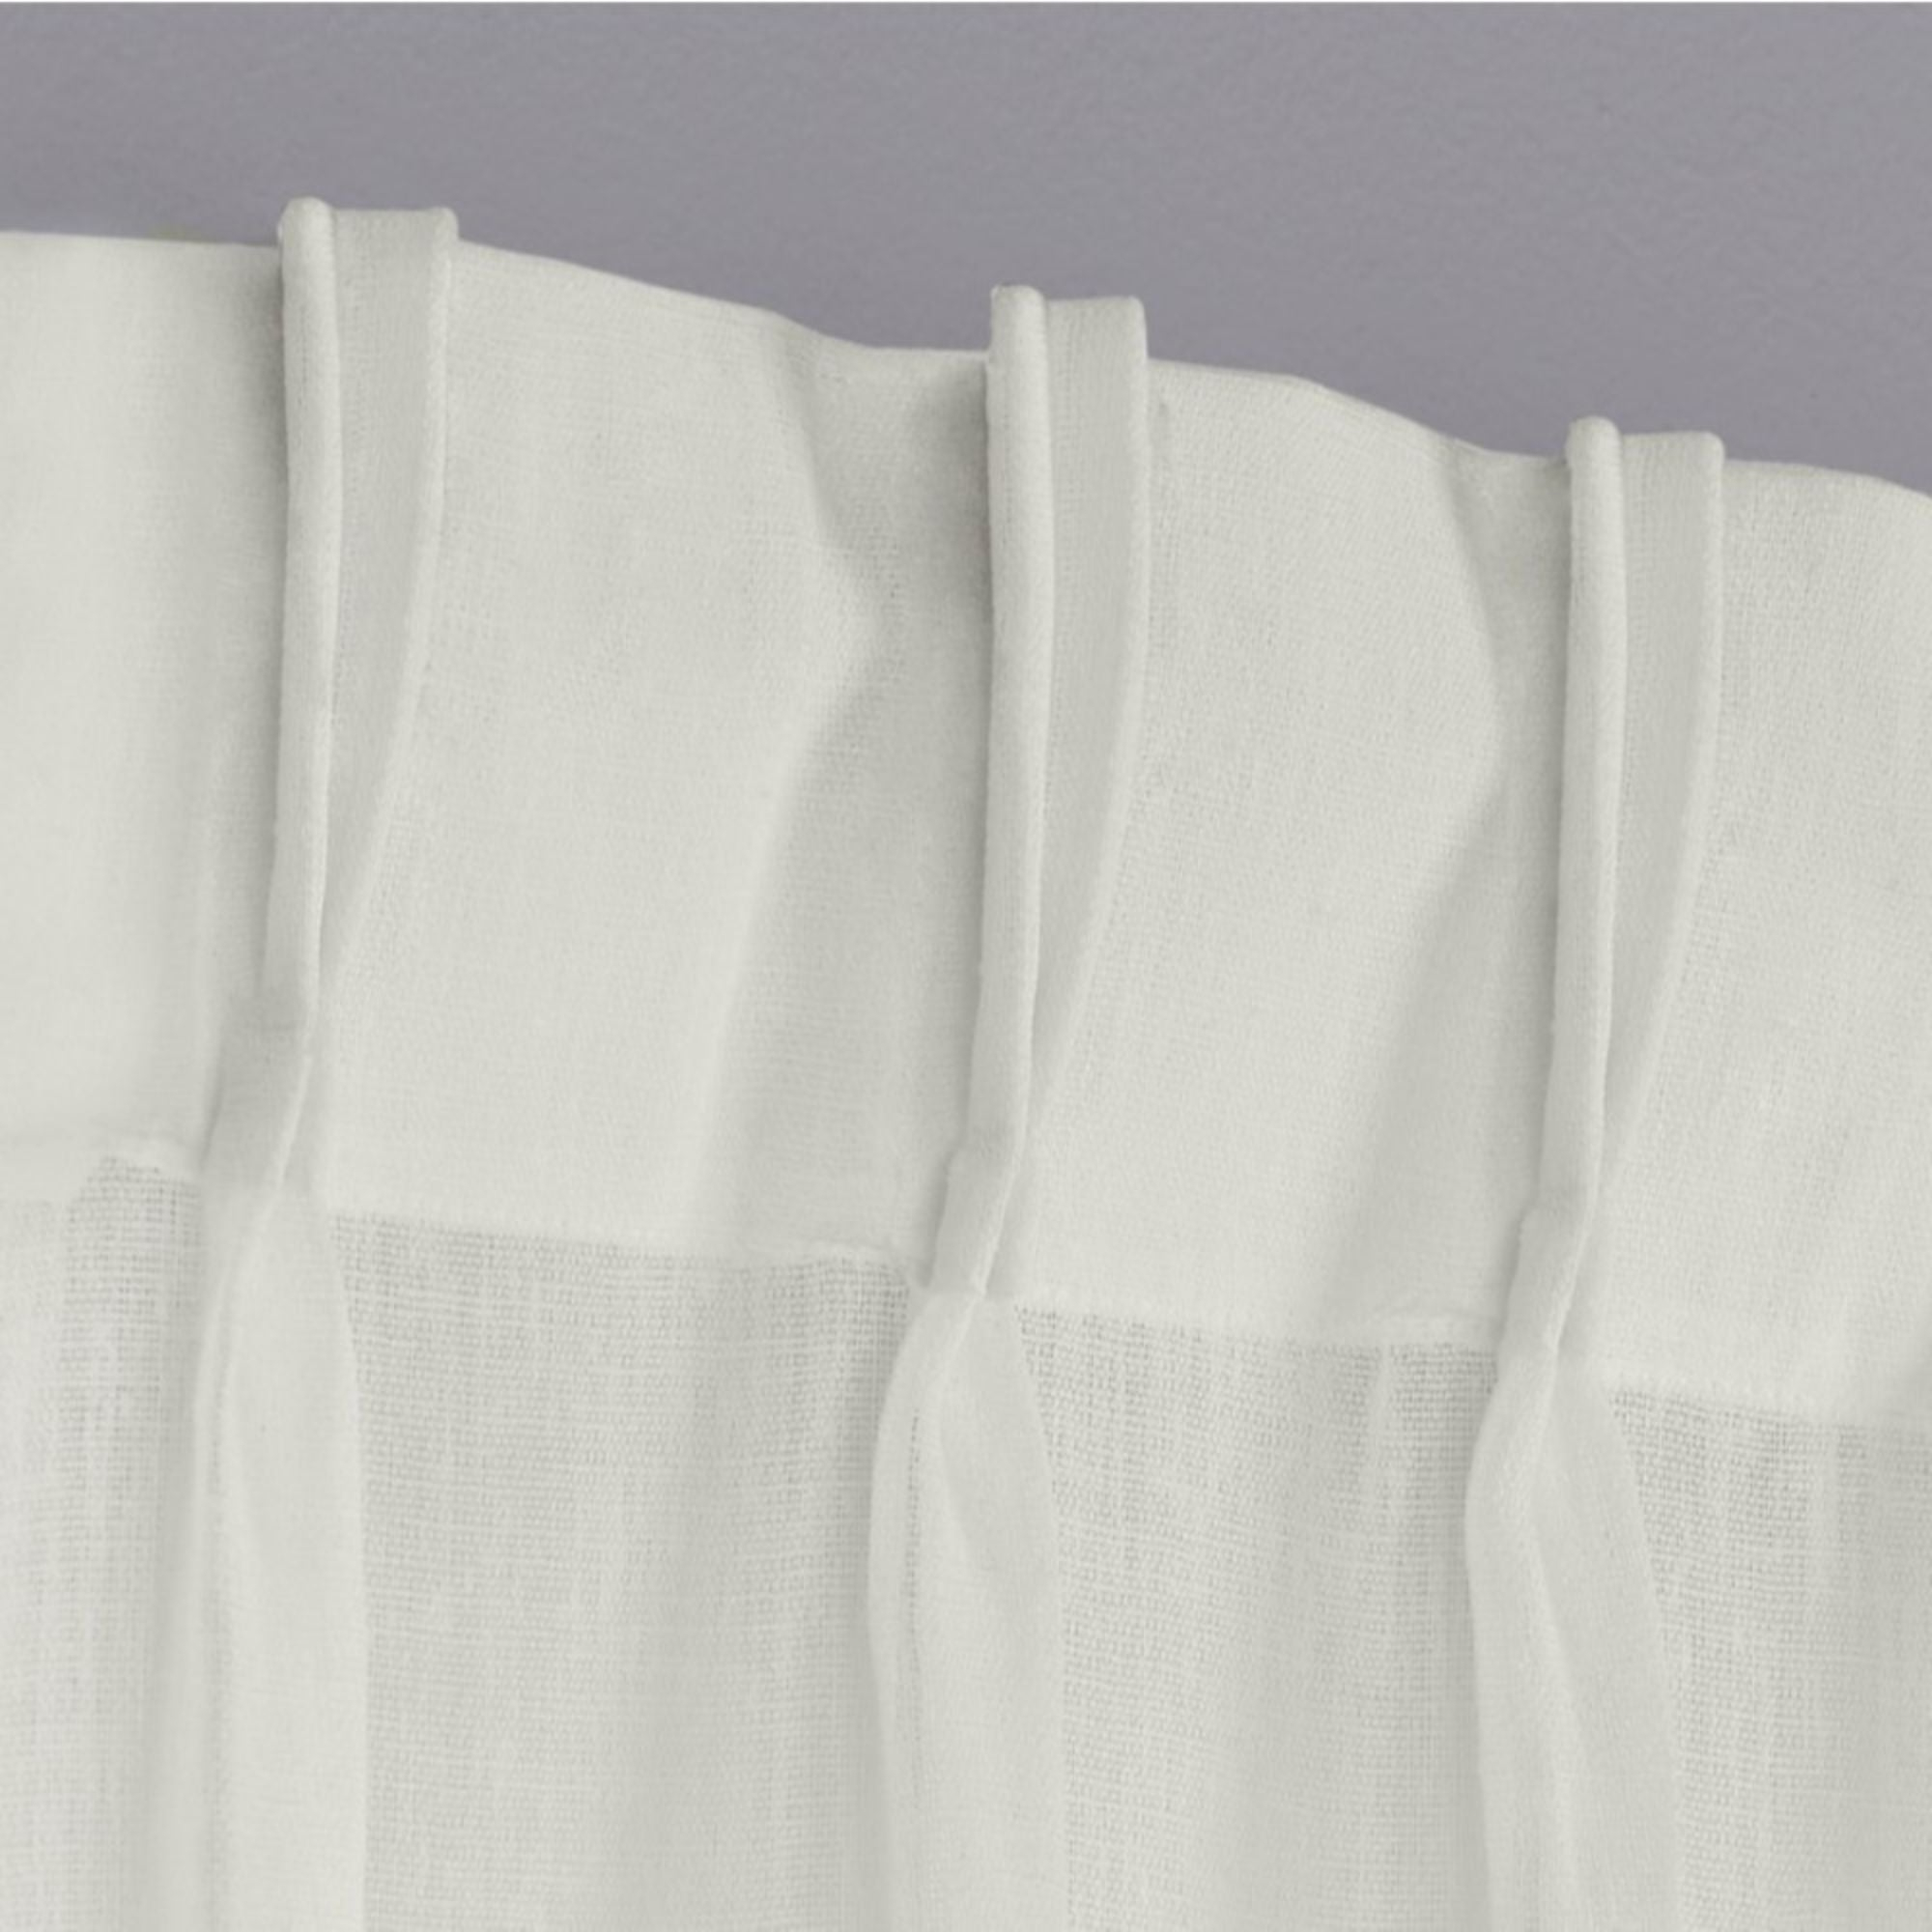 Details About Ati Home Belgian Jacquard Sheer Double Pinch Pleat Top Within Favorite Double Pinch Pleat Top Curtain Panel Pairs (View 7 of 20)